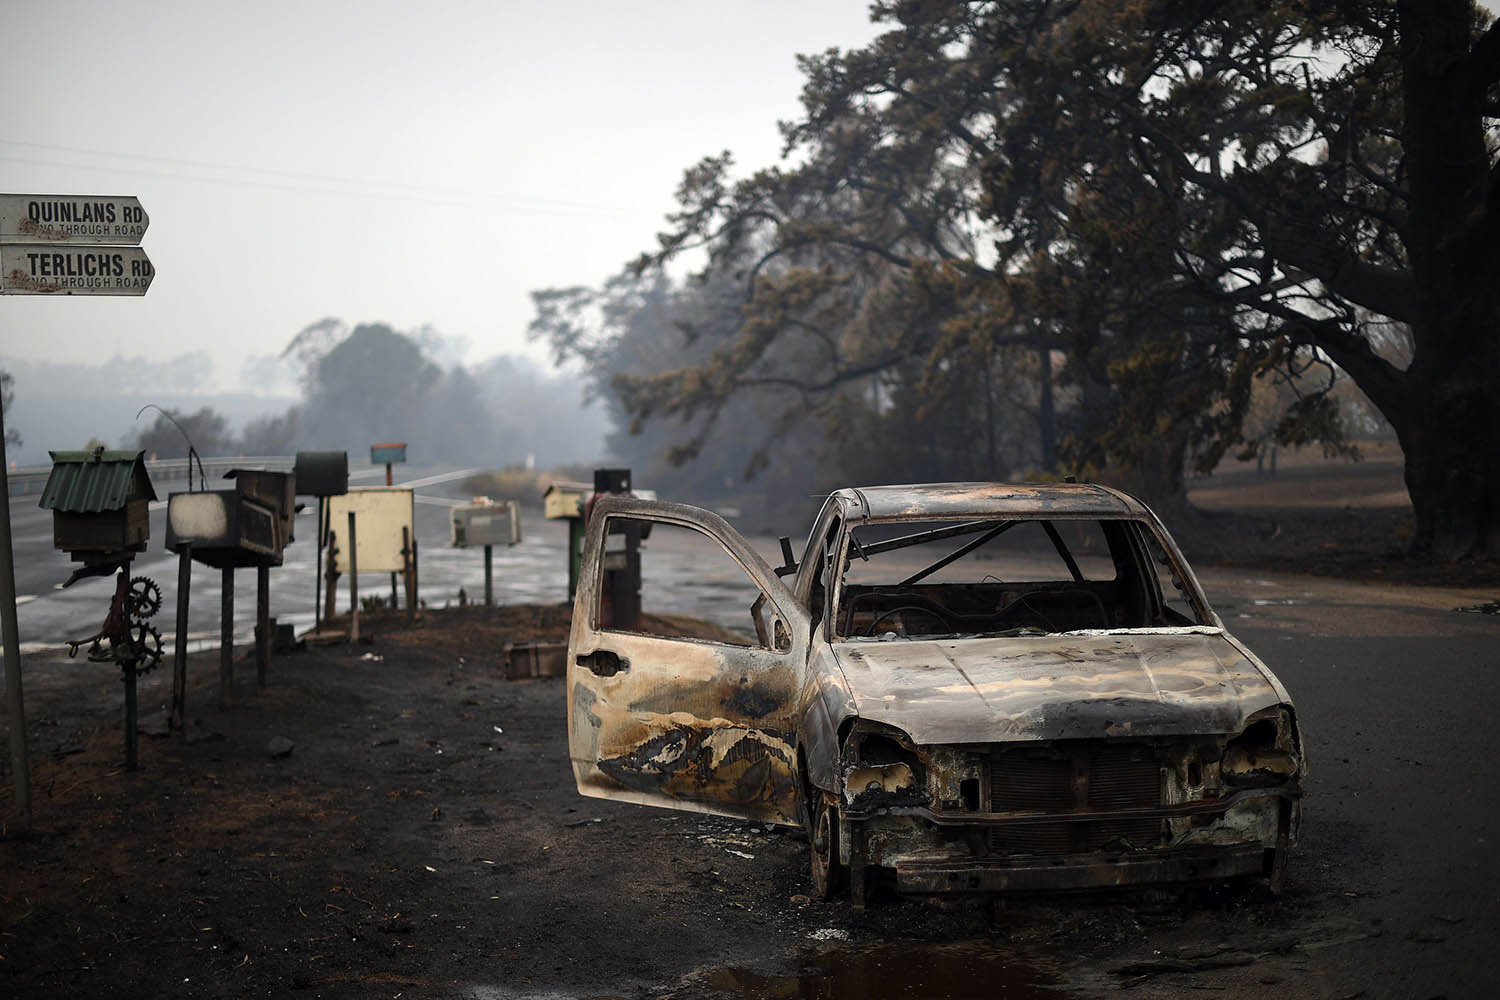 A burned vehicle is seen on Quinlans street after an overnight bushfire in Quaama on Jan. 6. SAEED KHAN/AFP via Getty Images